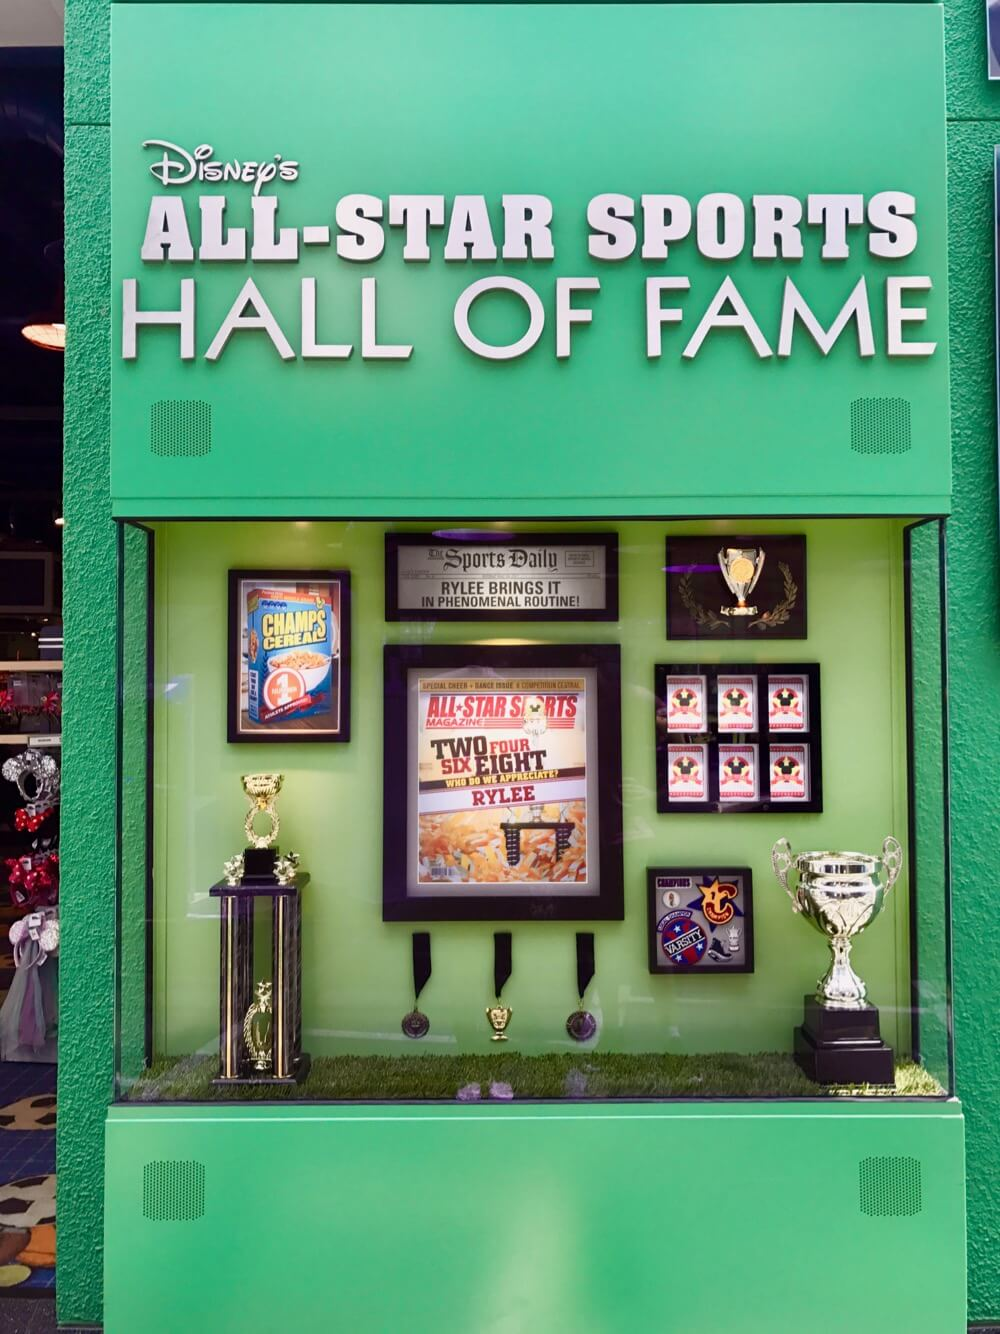 Disney World Value Resort Hotels - All Star Sports Hall of Fame